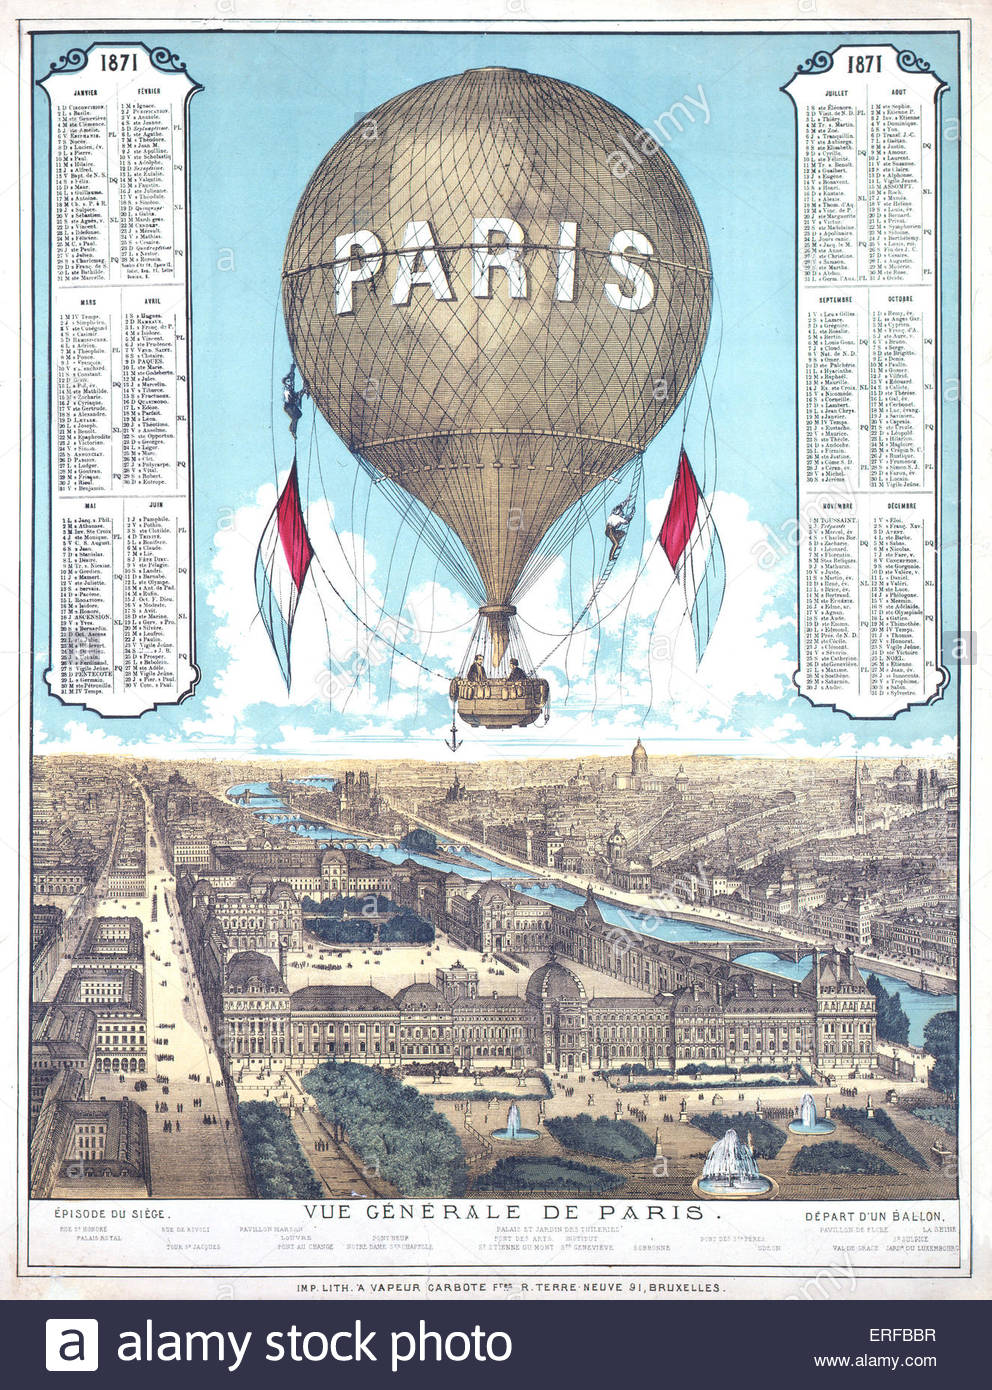 General view  of Paris, hot air balloon 1871. List of ballon departure locations during the Paris siege (1870-71). - Stock Image